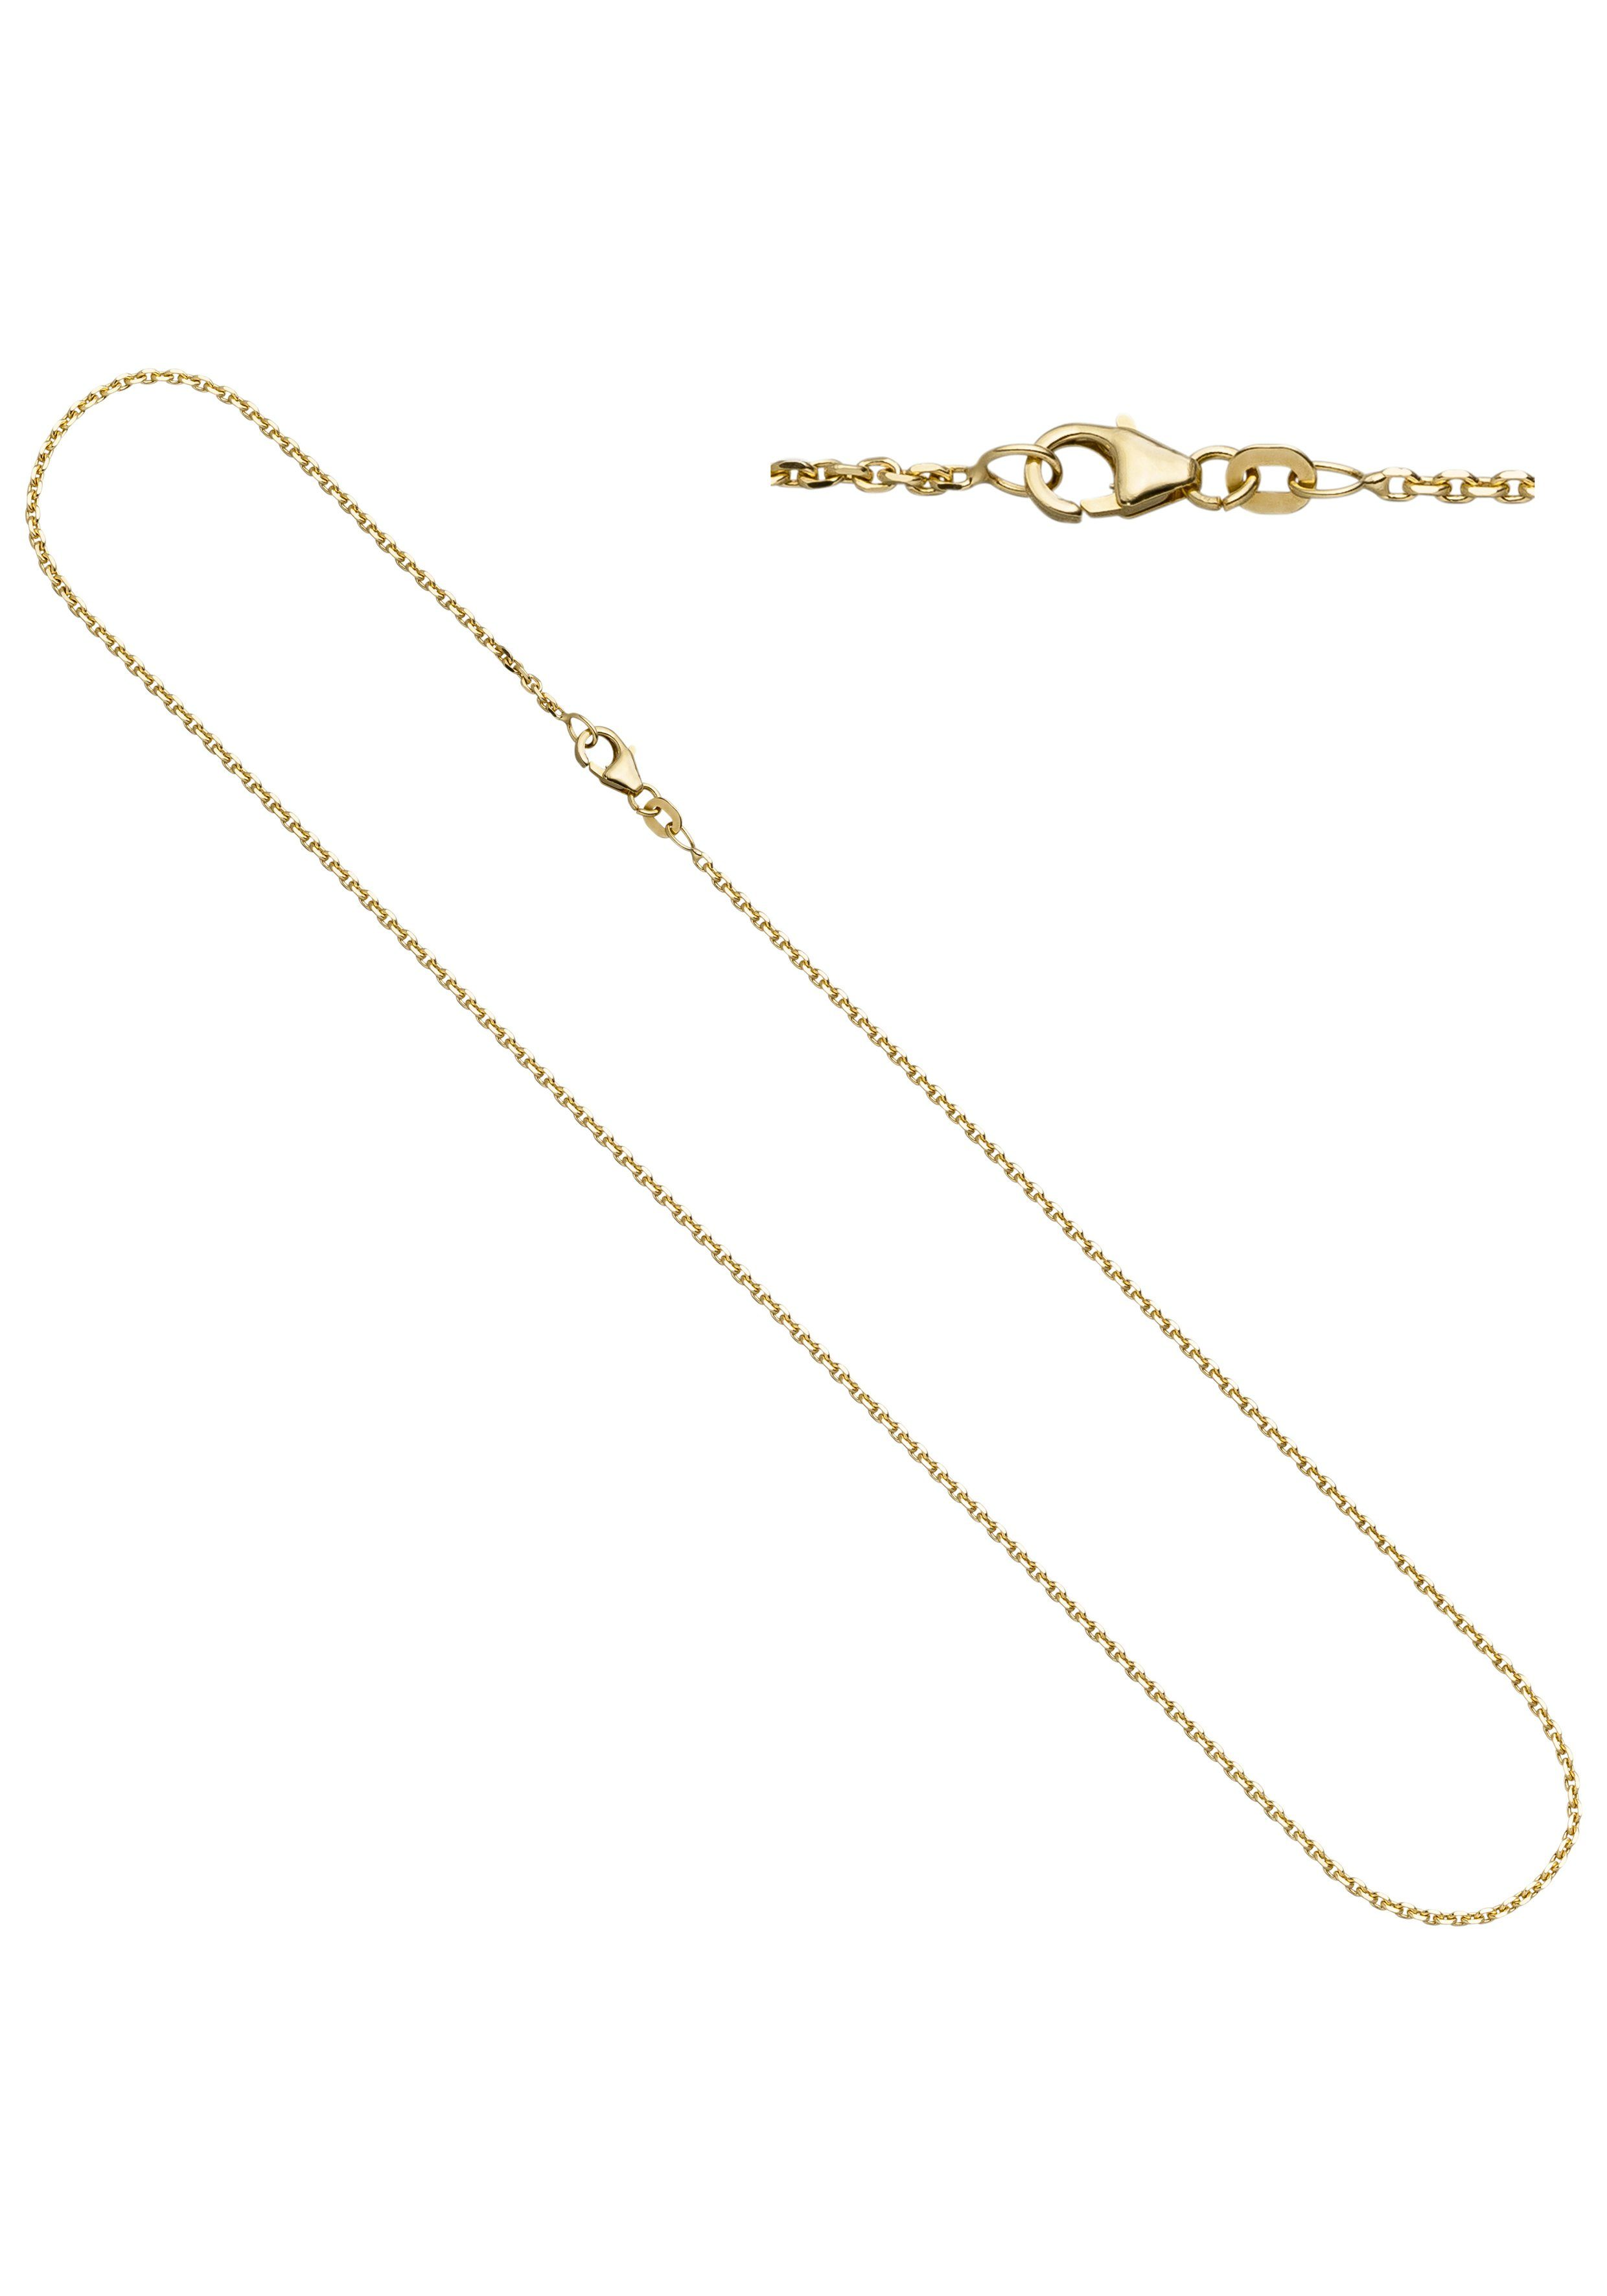 JOBO Goldkette Ankerkette 585 Gold diamantiert 50 cm 1,9 mm